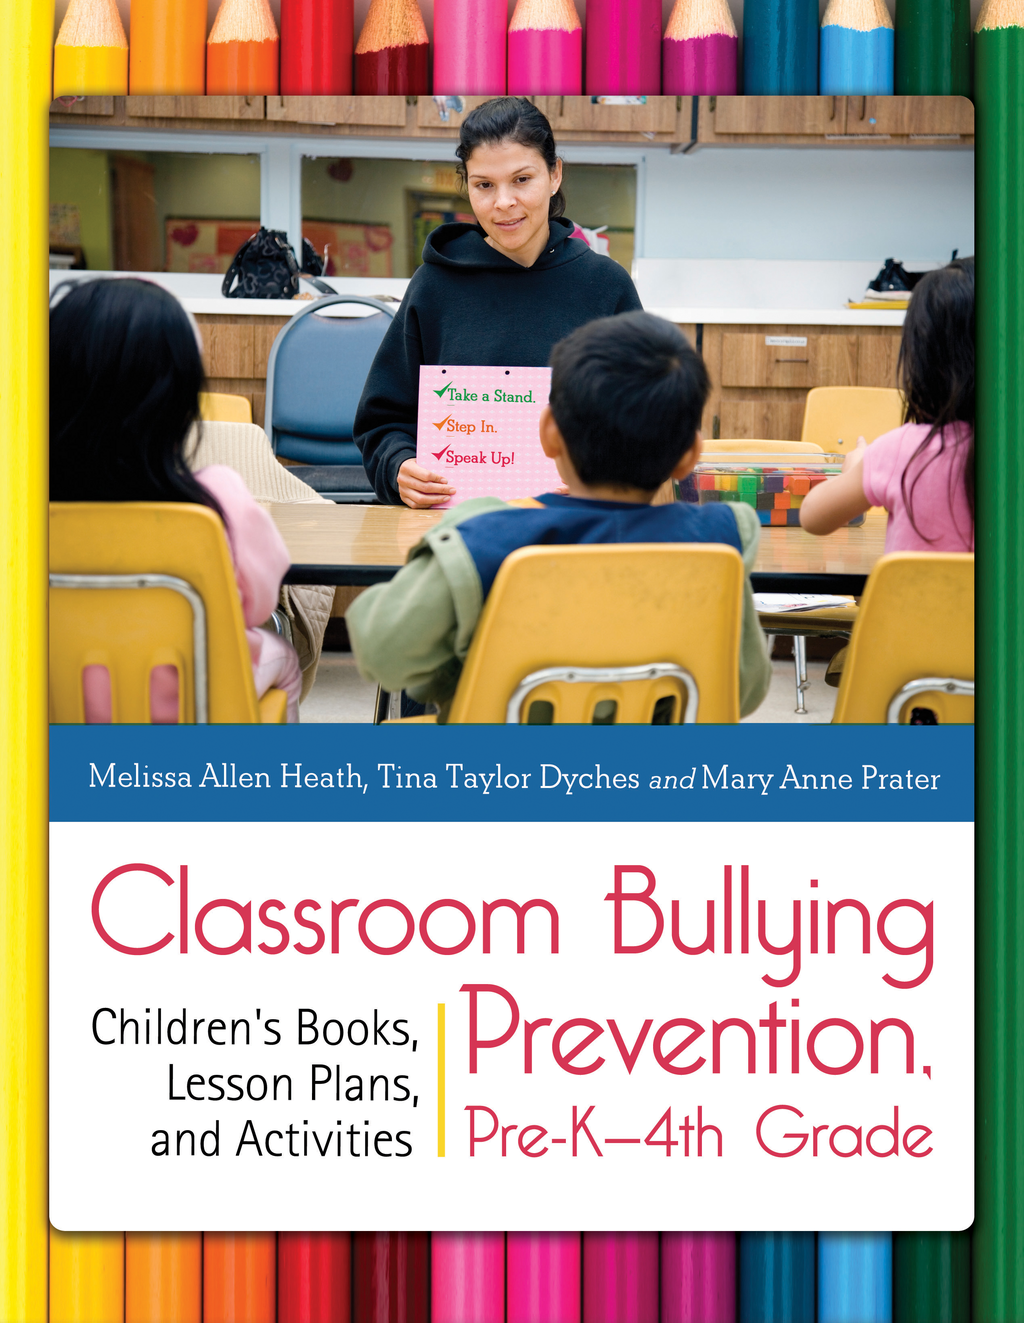 Classroom Bullying Prevention, Pre-K–4th Grade: Children's Books, Lesson Plans, and Activities By: Mary Anne Prater,Melissa Allen Heath,Tina Taylor Dyches